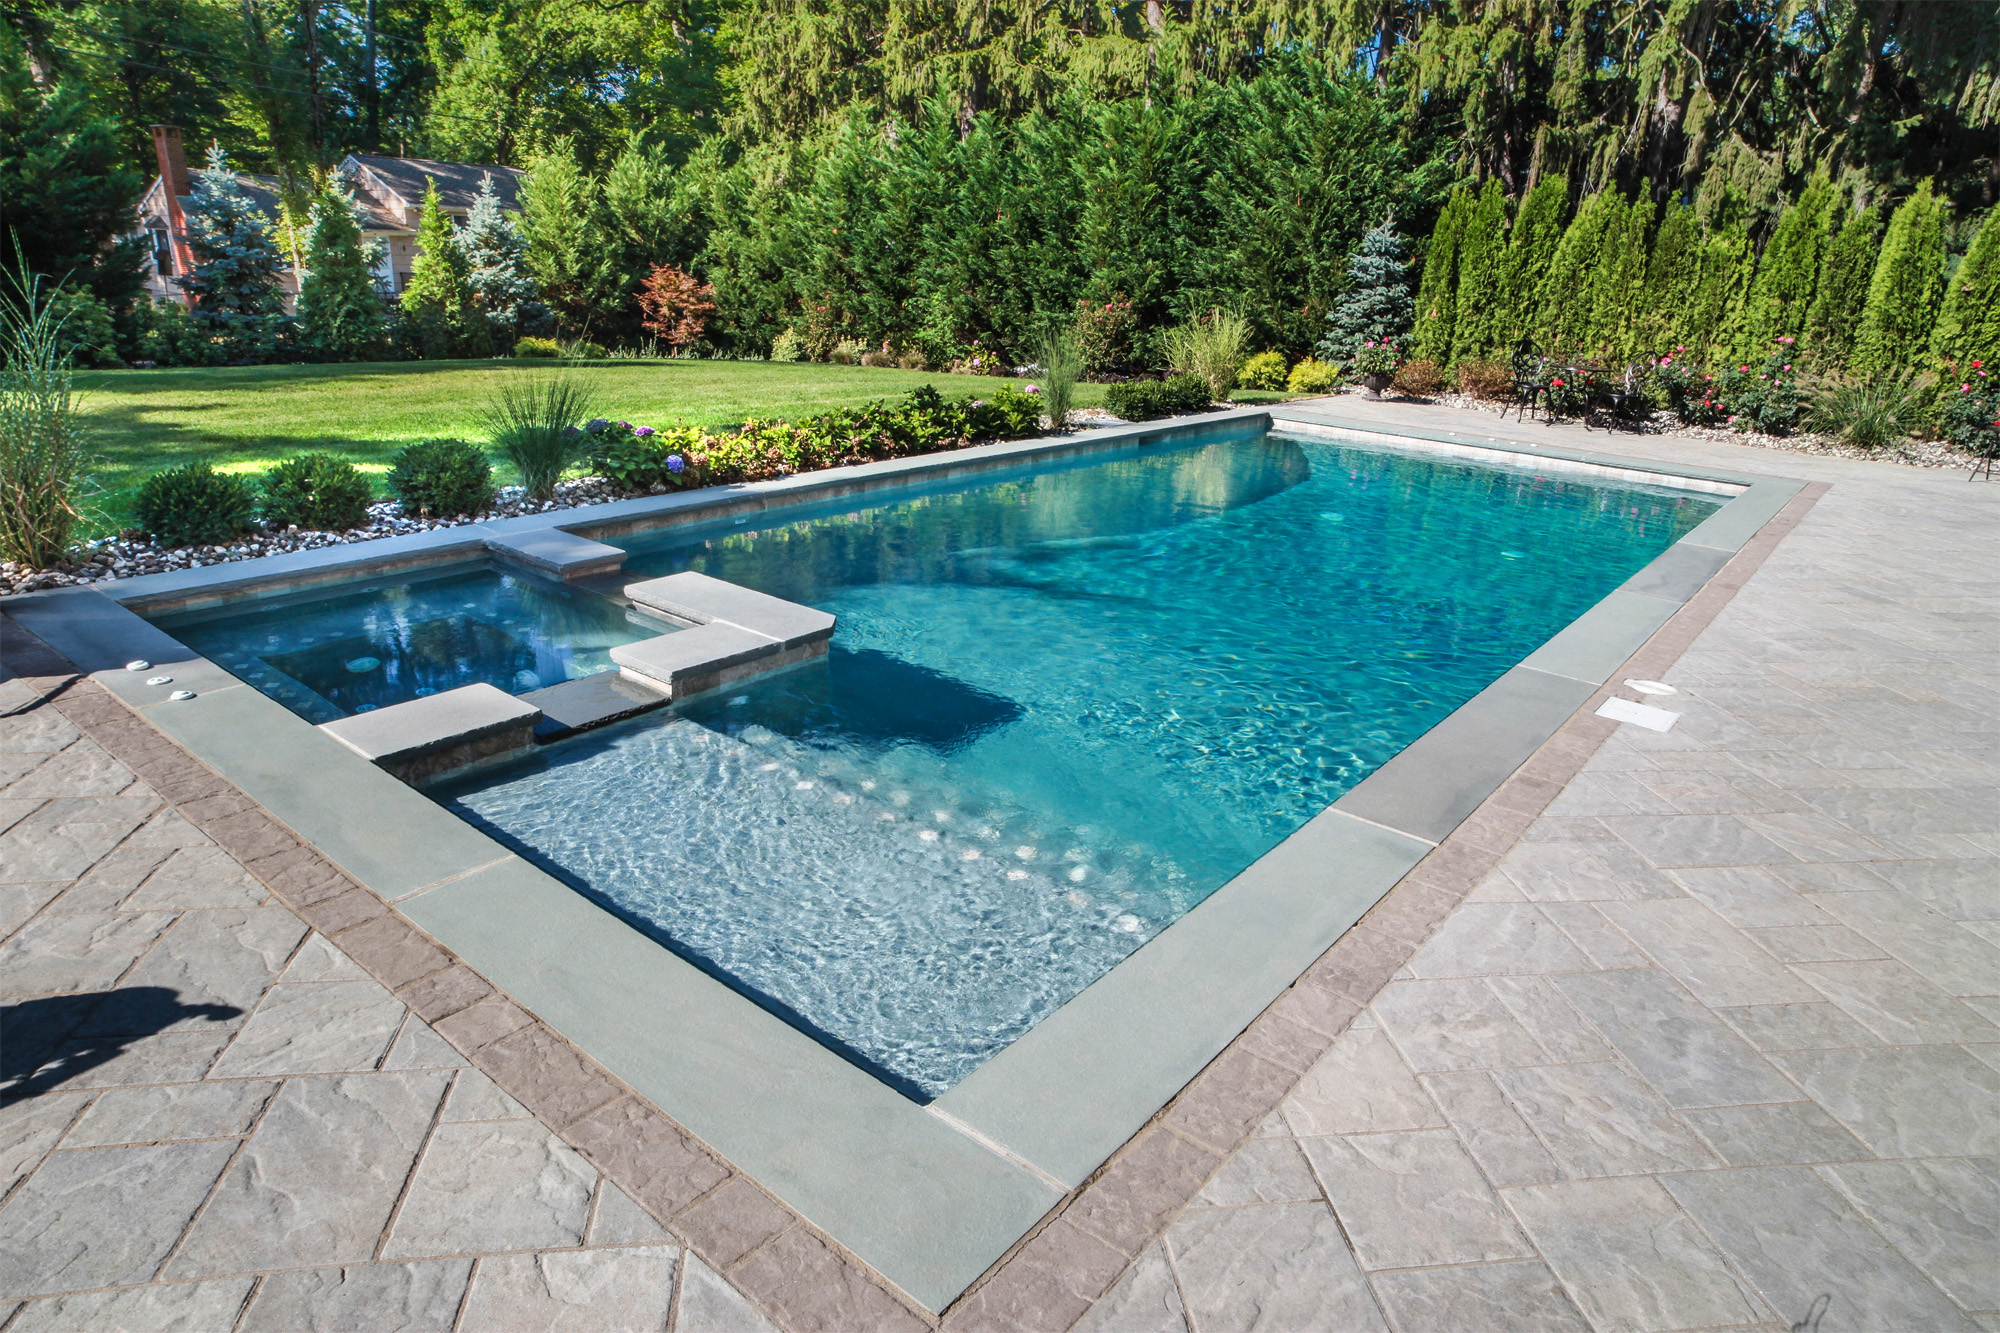 Visio Swimming Pool Design : Emejing rectangular swimming pool designs photos